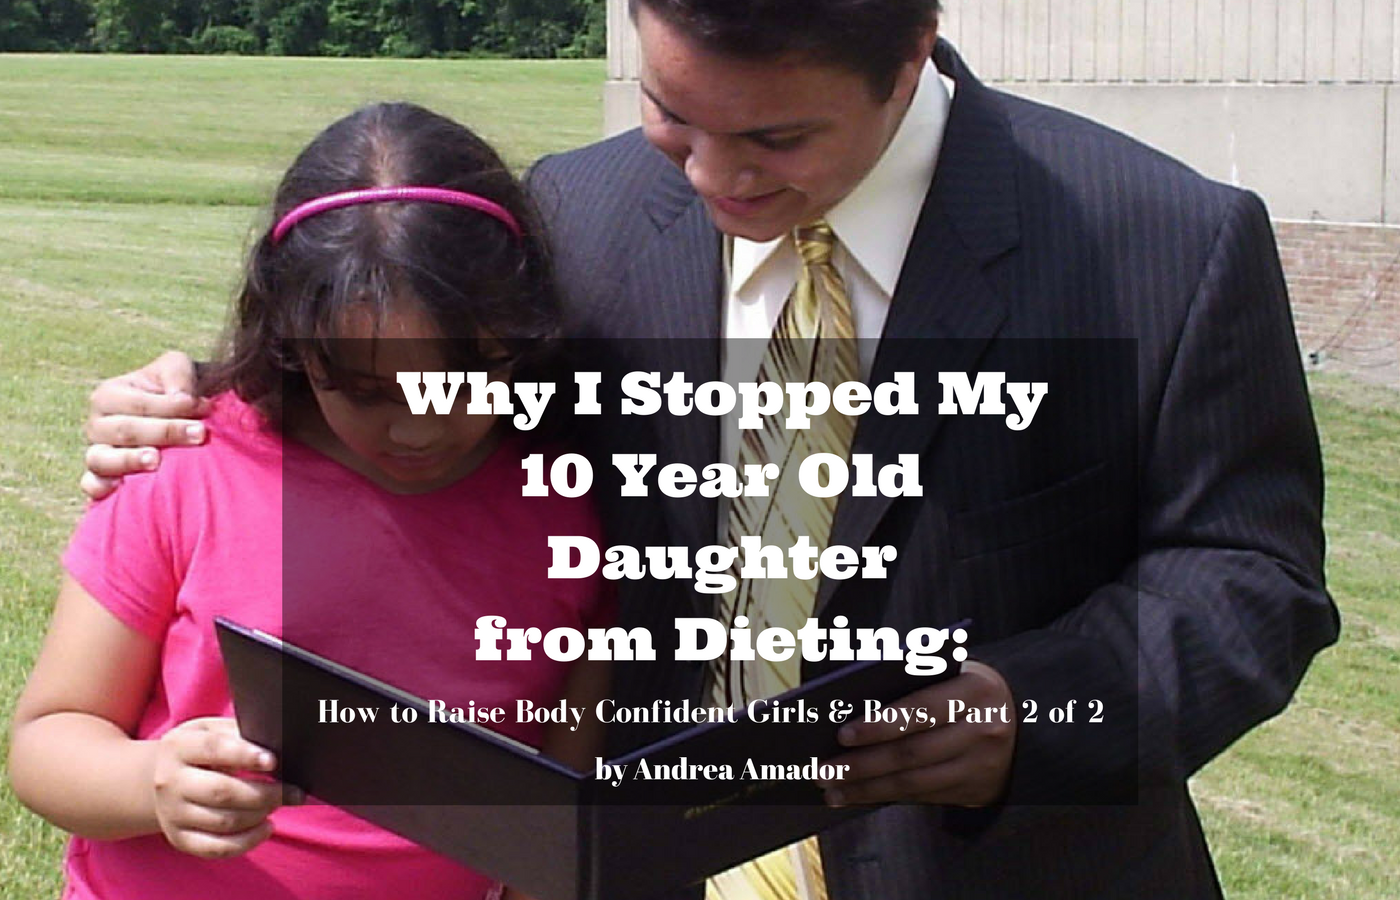 Why I Stopped My 10 Year Old Daughter from Dieting: How to Raise Body Confident Girls & Boys, Part 2 of 2